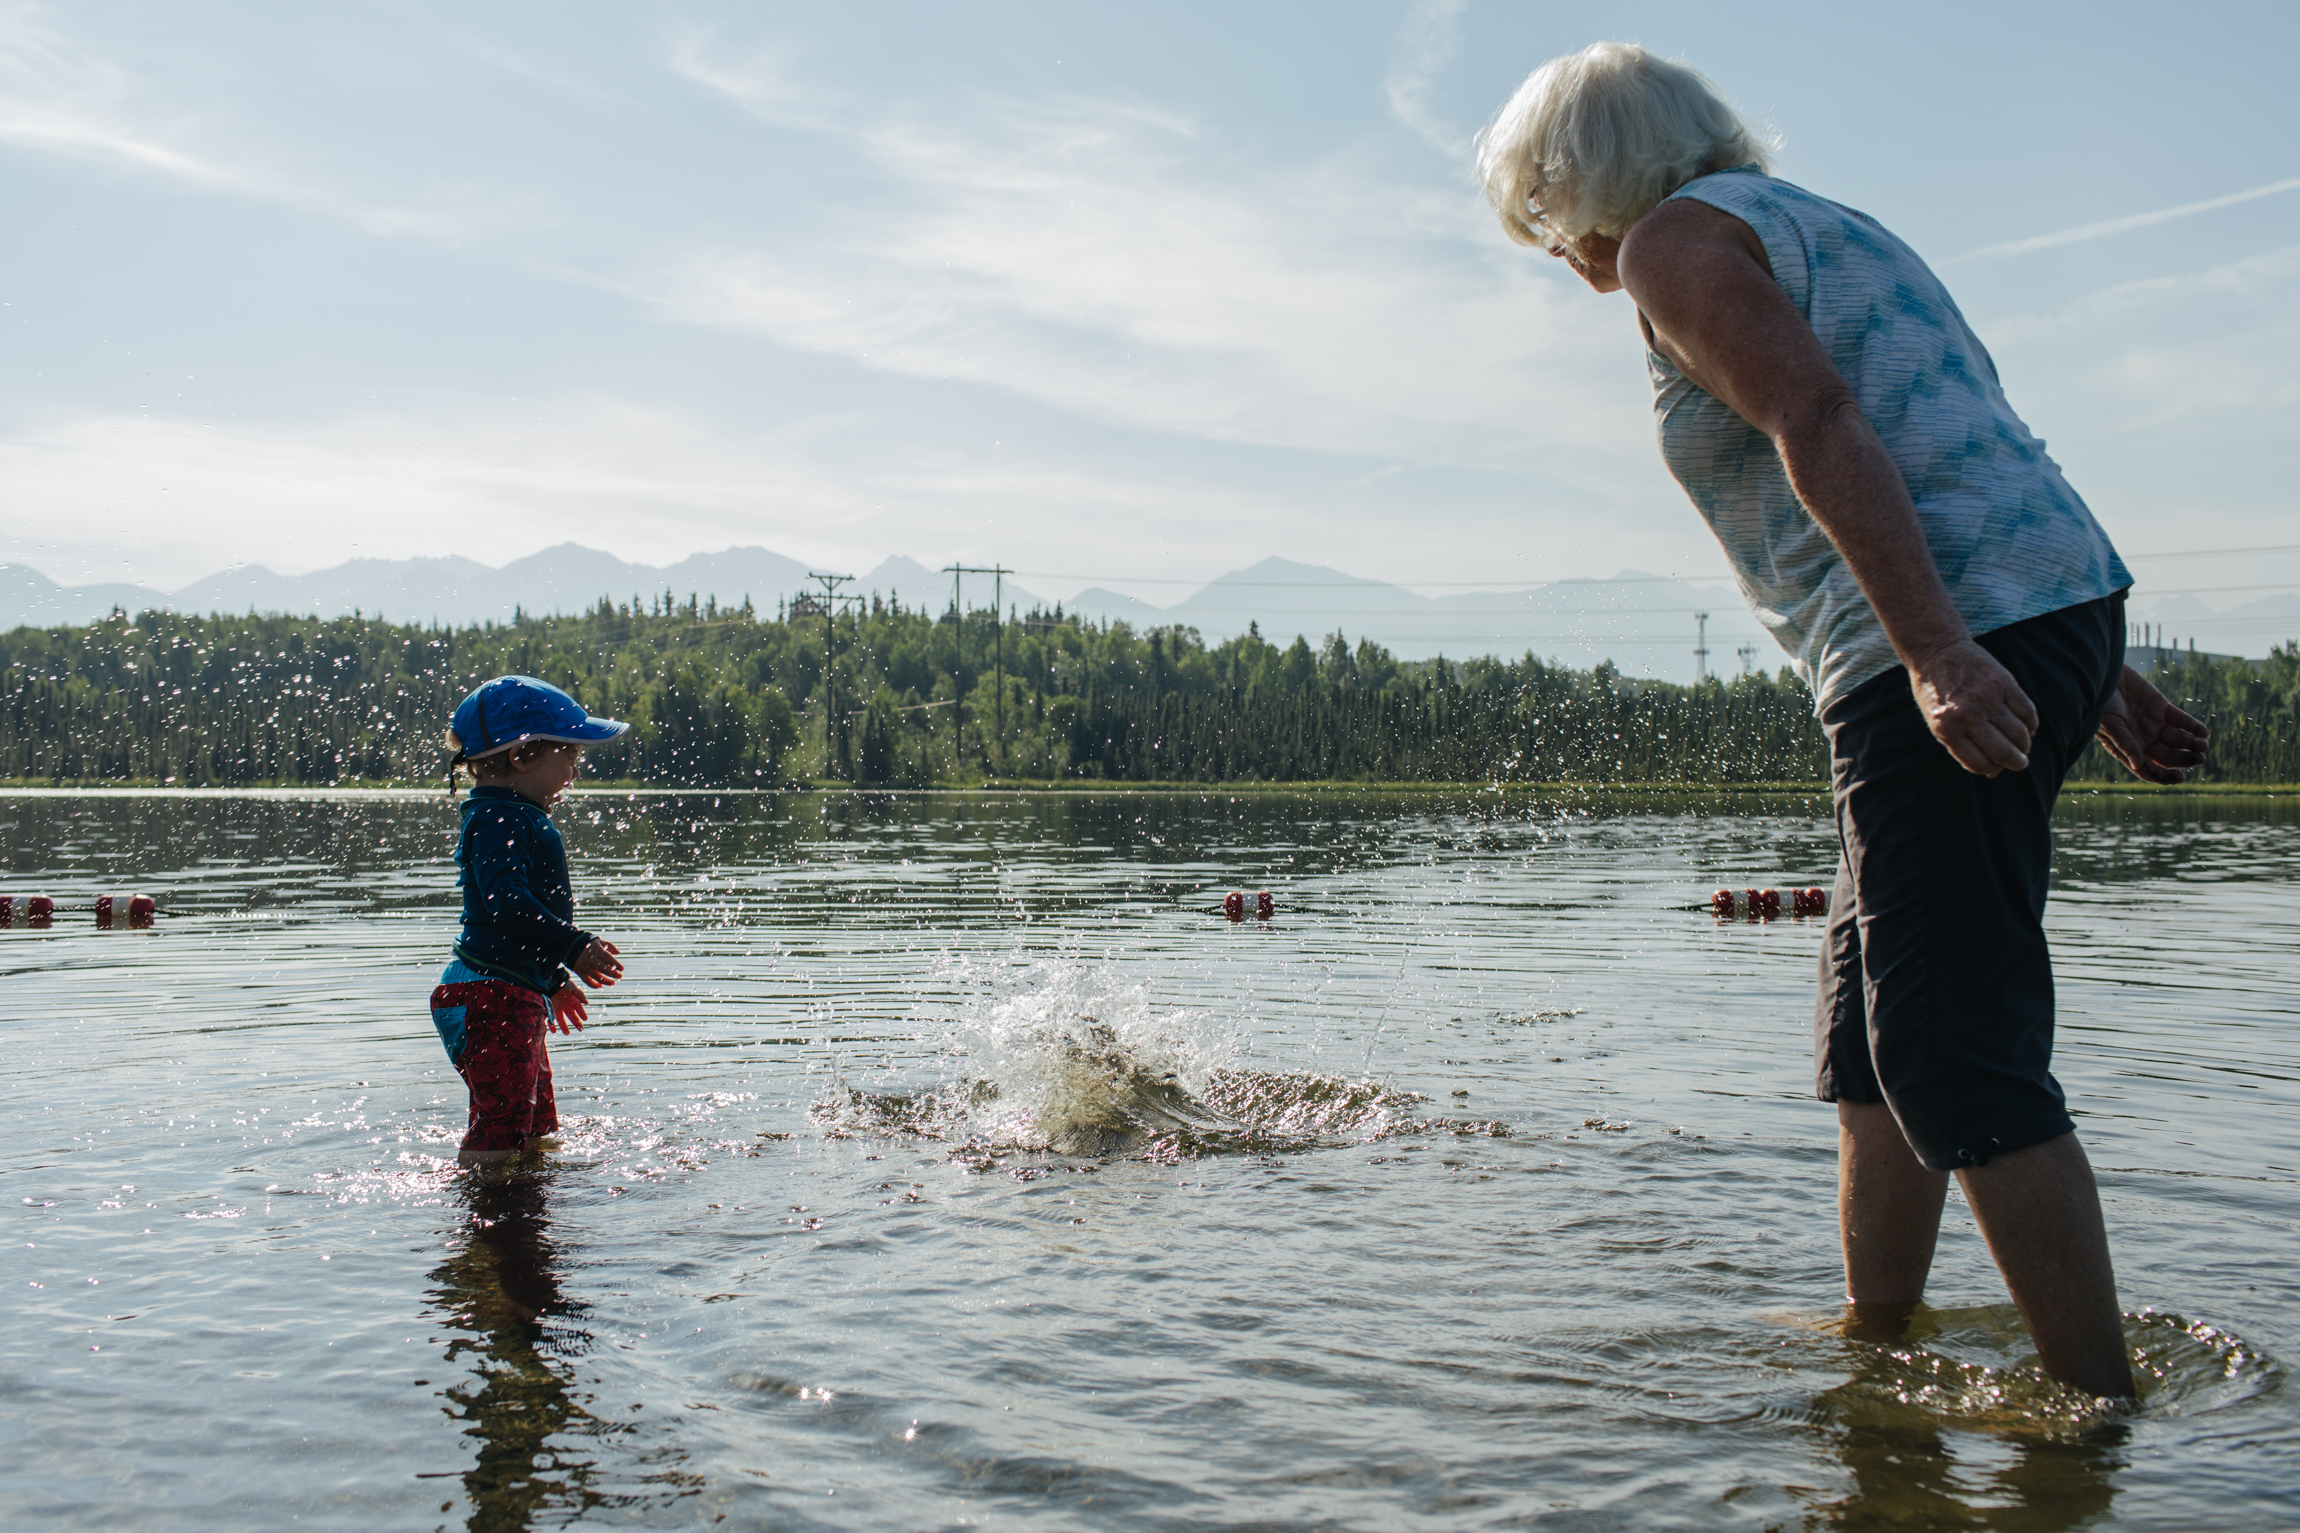 Robin Nyce (r) plays with 19 month old Fischer Nyce at Goose Lake in Anchorage, Alaska during an abnormal, prolonged heatwave. For The New York Times.